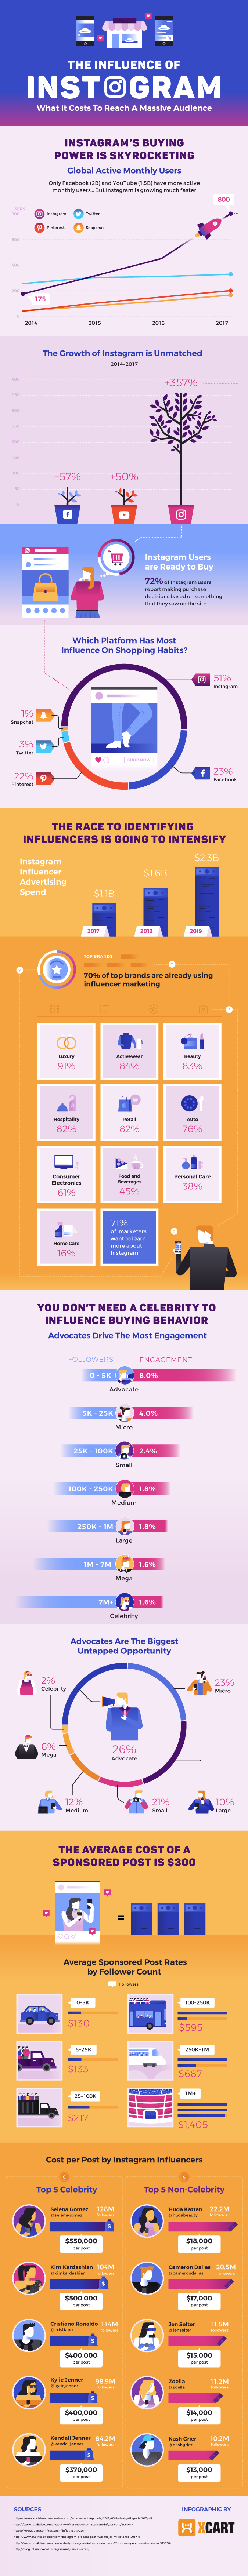 Considering Instagram influencers to grow your business? It's perfect if you have a small following, but don't want to spend a ton of money on ads.